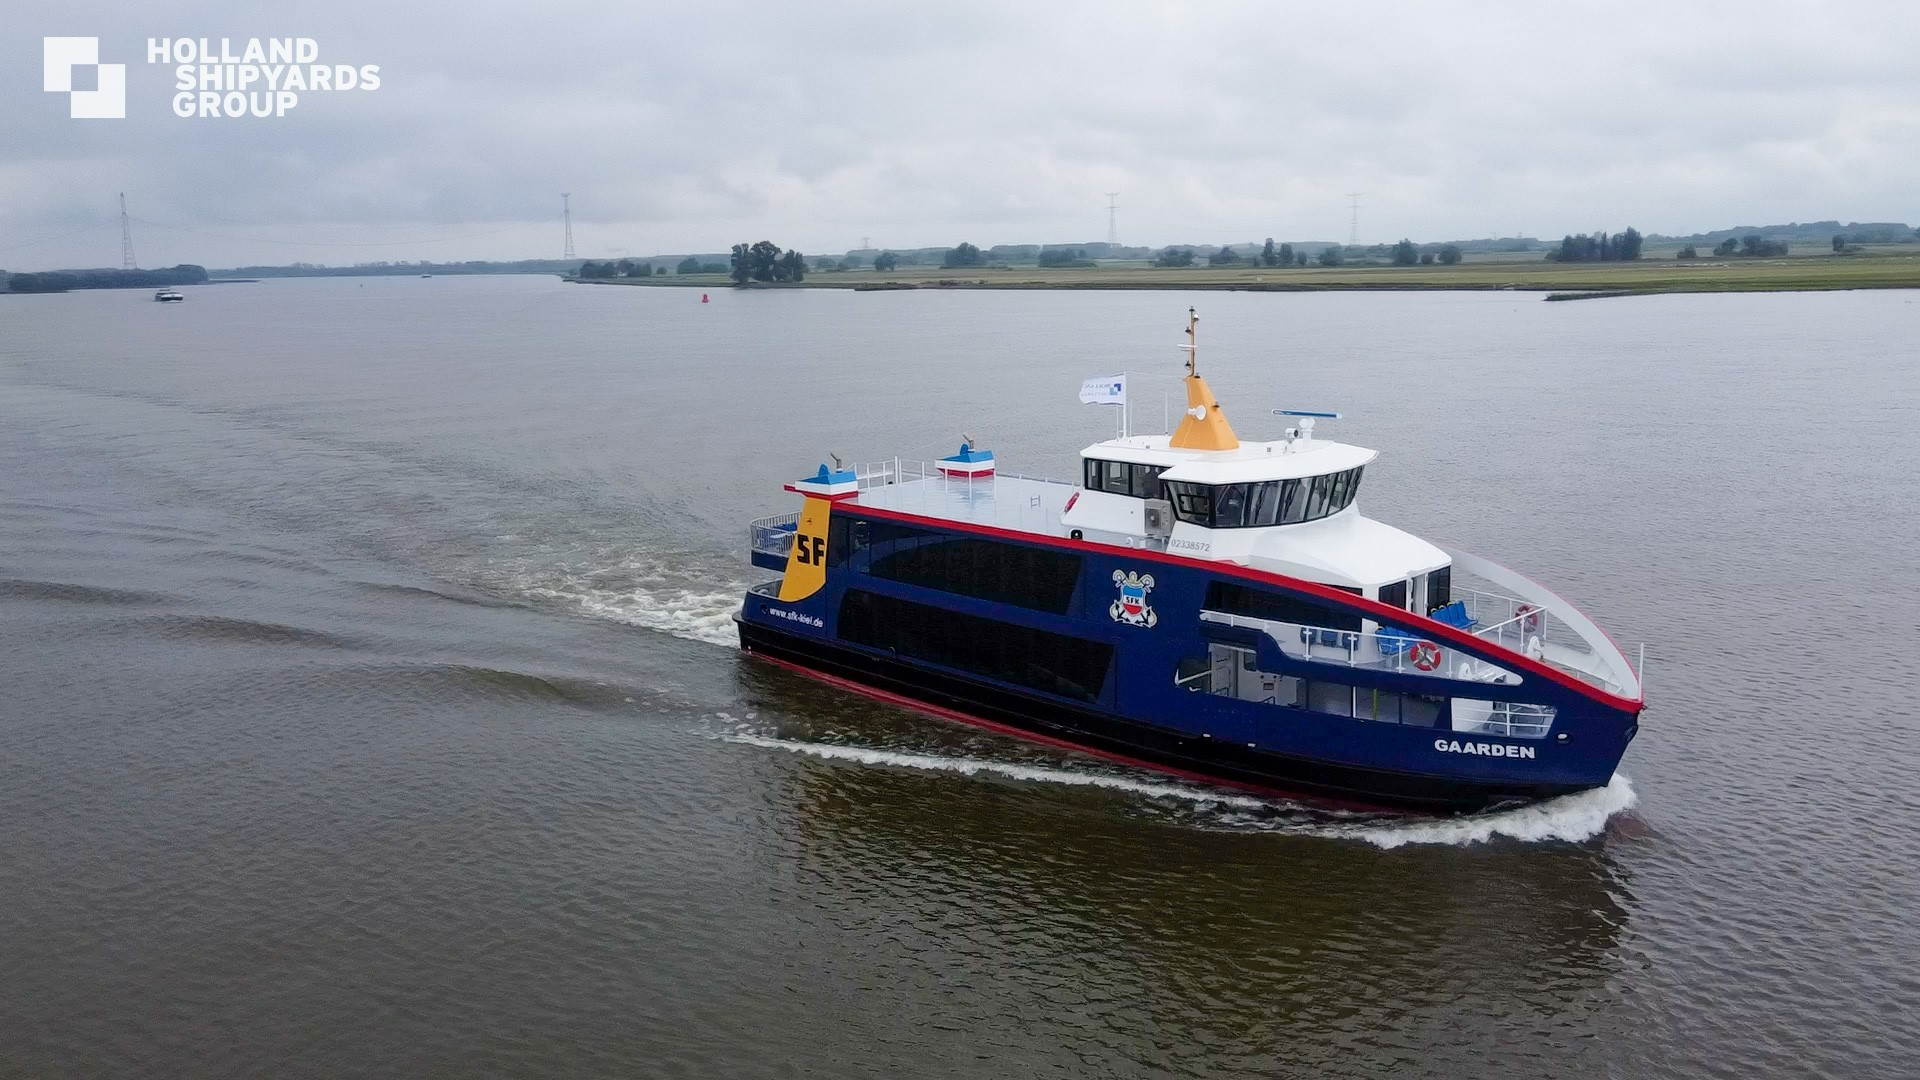 Holland Shipyards to build three additional hybrid ferries for SFK